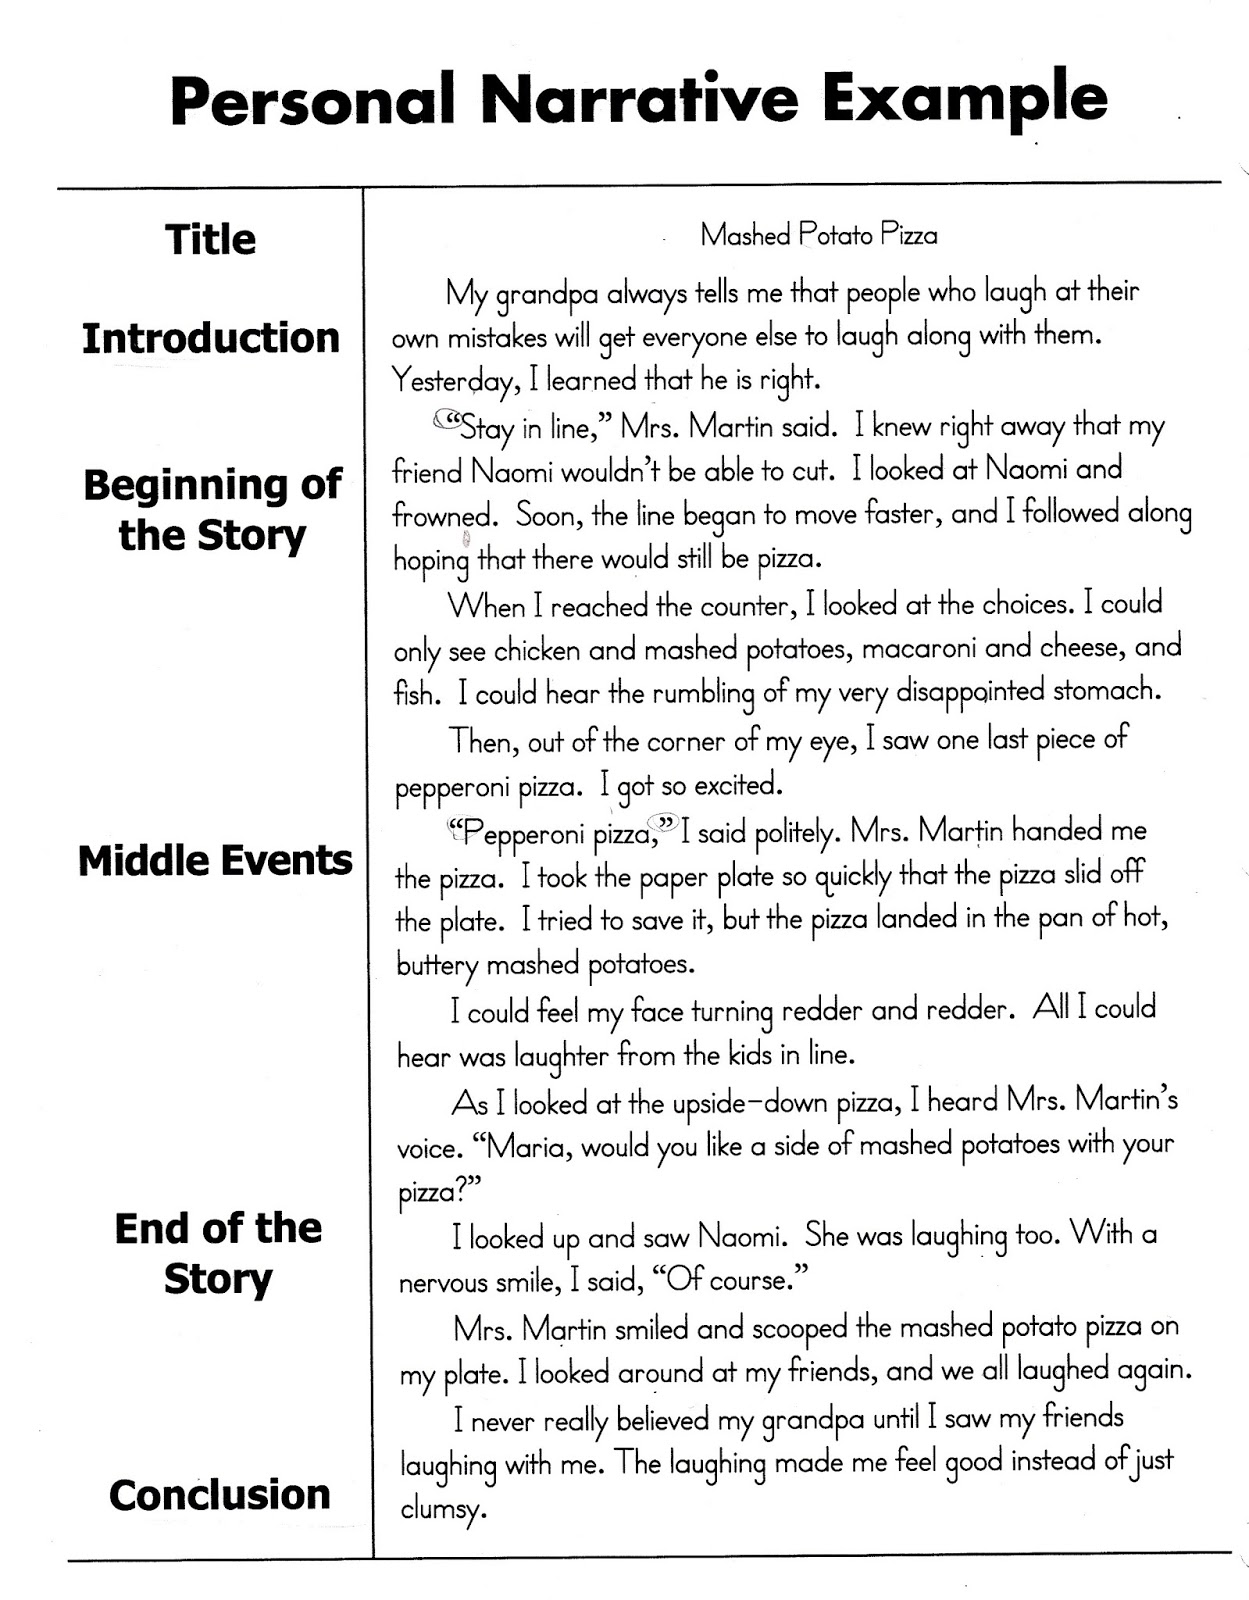 Top Narrative Essay Examples To Help You Write Better